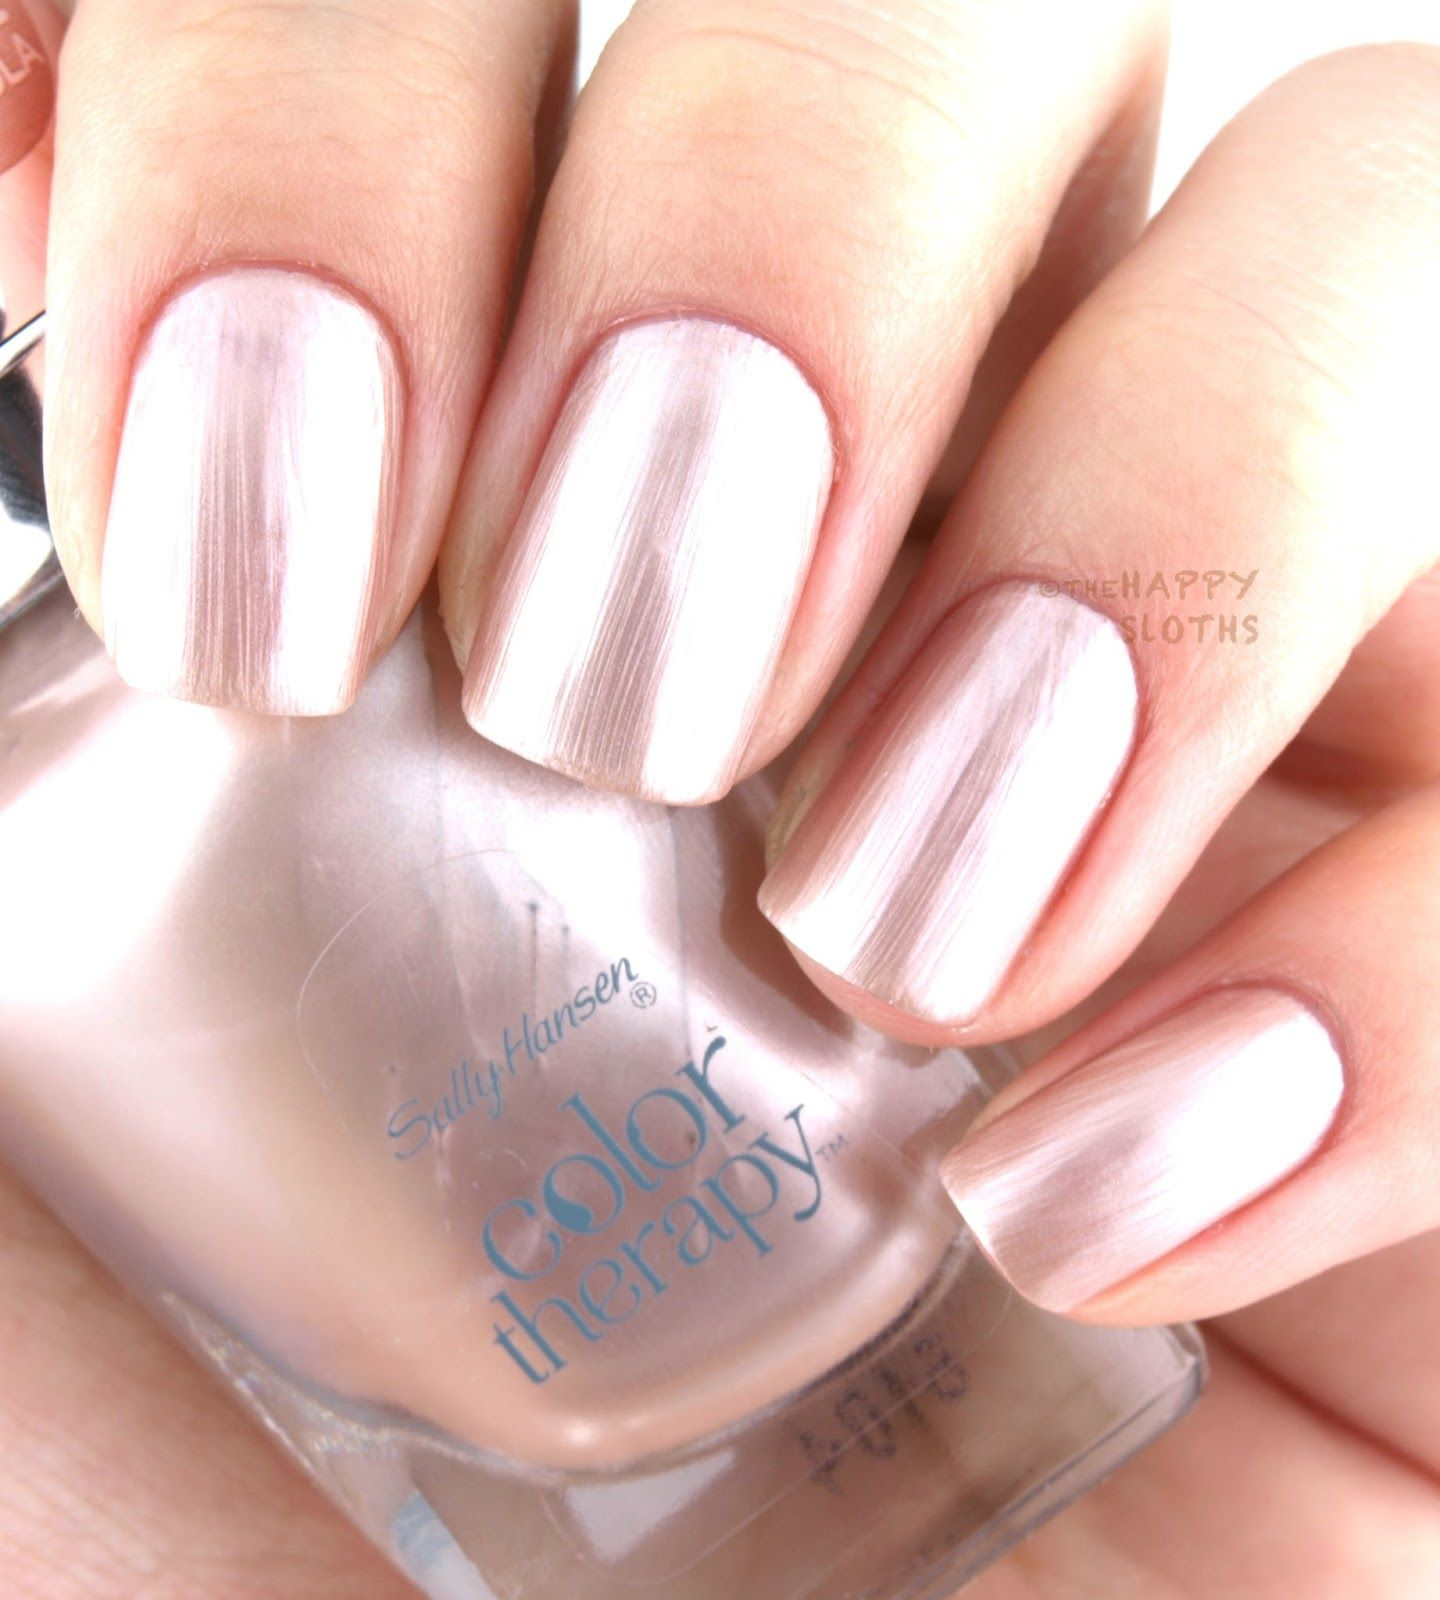 Colour therapy for marriage - The Happy Sloths Sally Hansen Color Therapy Nail Polish Review And Swatches